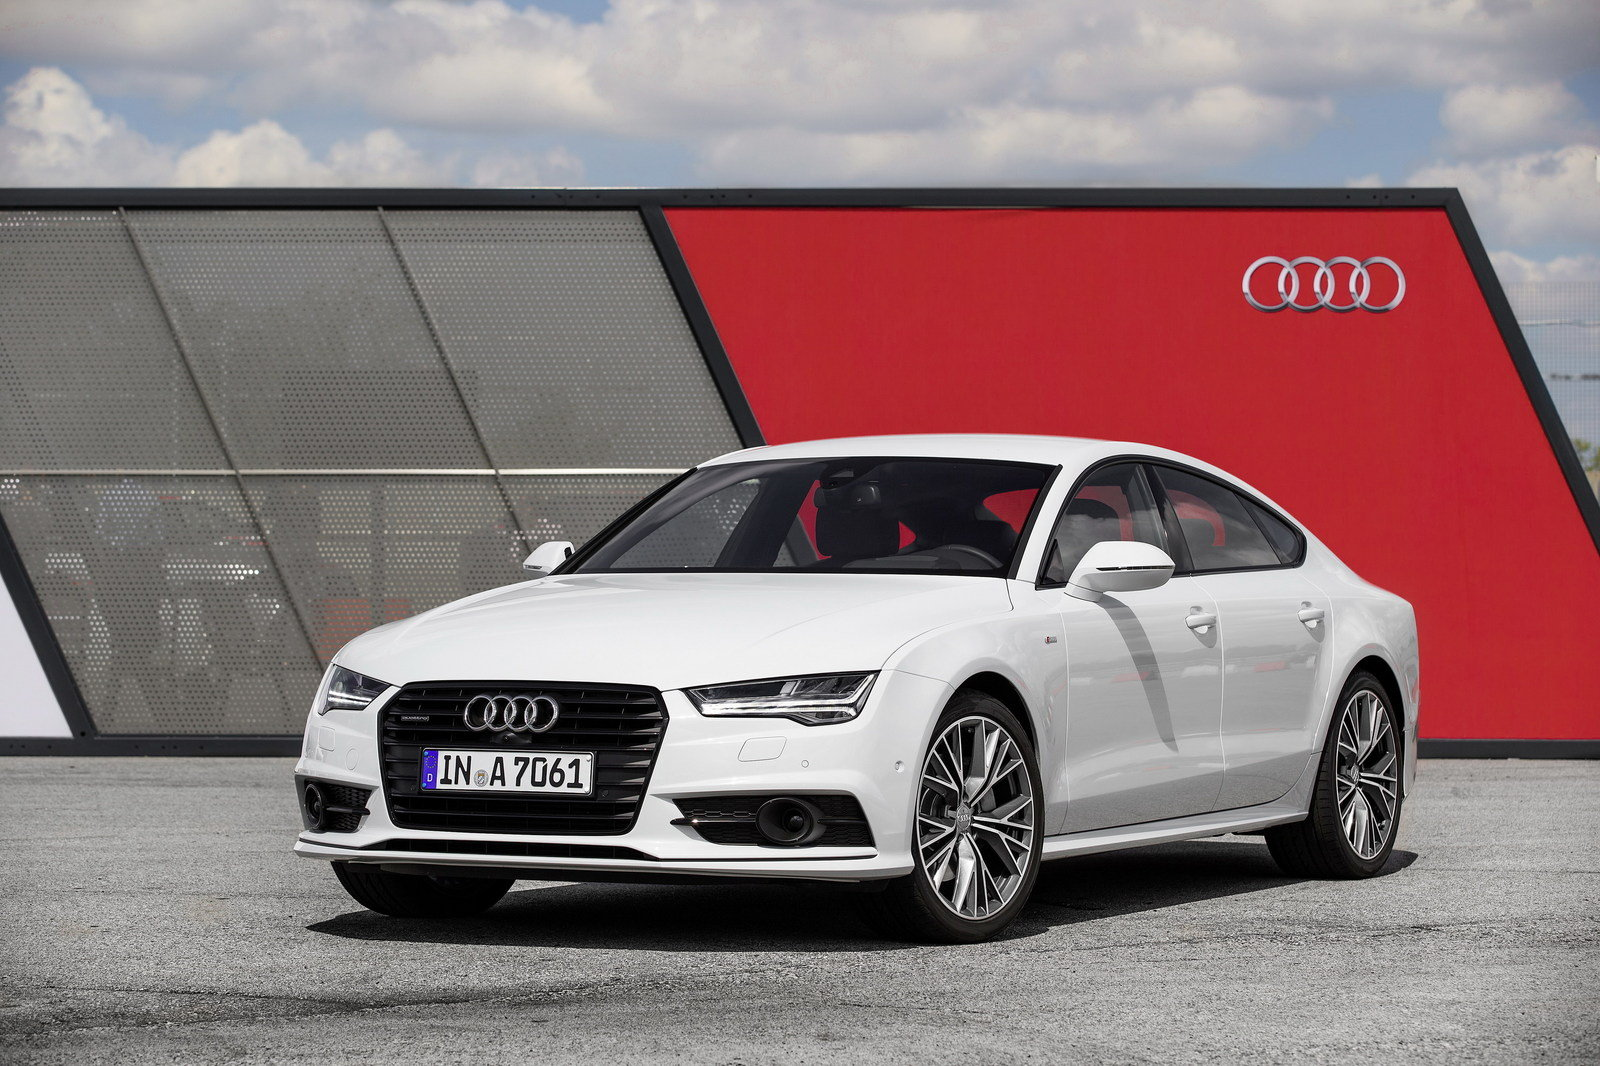 2017 audi a7 picture 673711 car review top speed. Black Bedroom Furniture Sets. Home Design Ideas